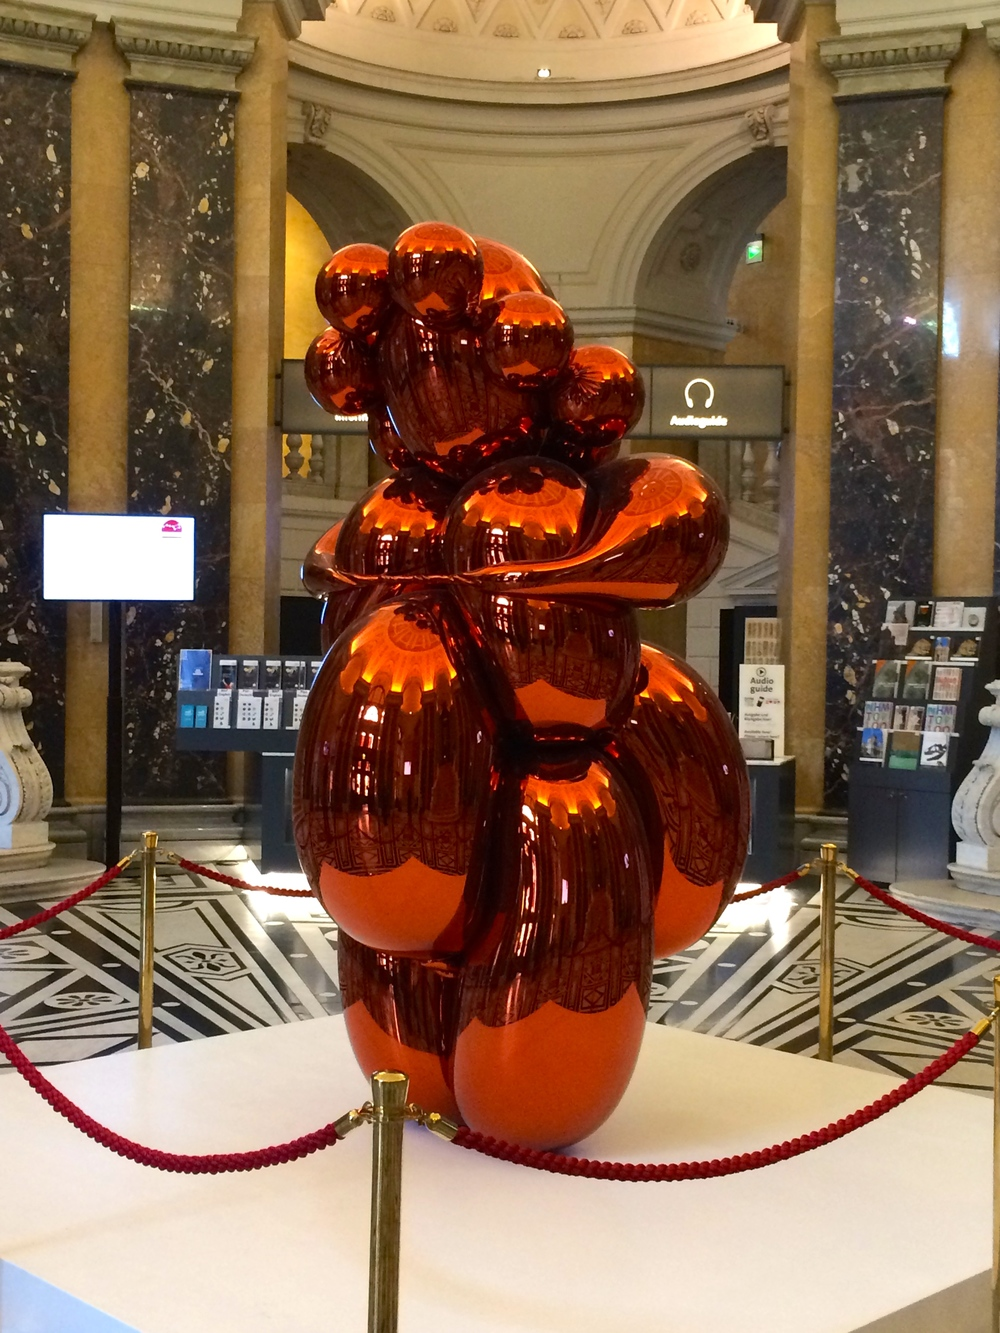 """""""How should we greet all the visitors to the museum?""""  """"Oh I know. Let's have a  balloon animal-looking statue  of our most popular item. That'll help make it relevant to the kids!"""""""